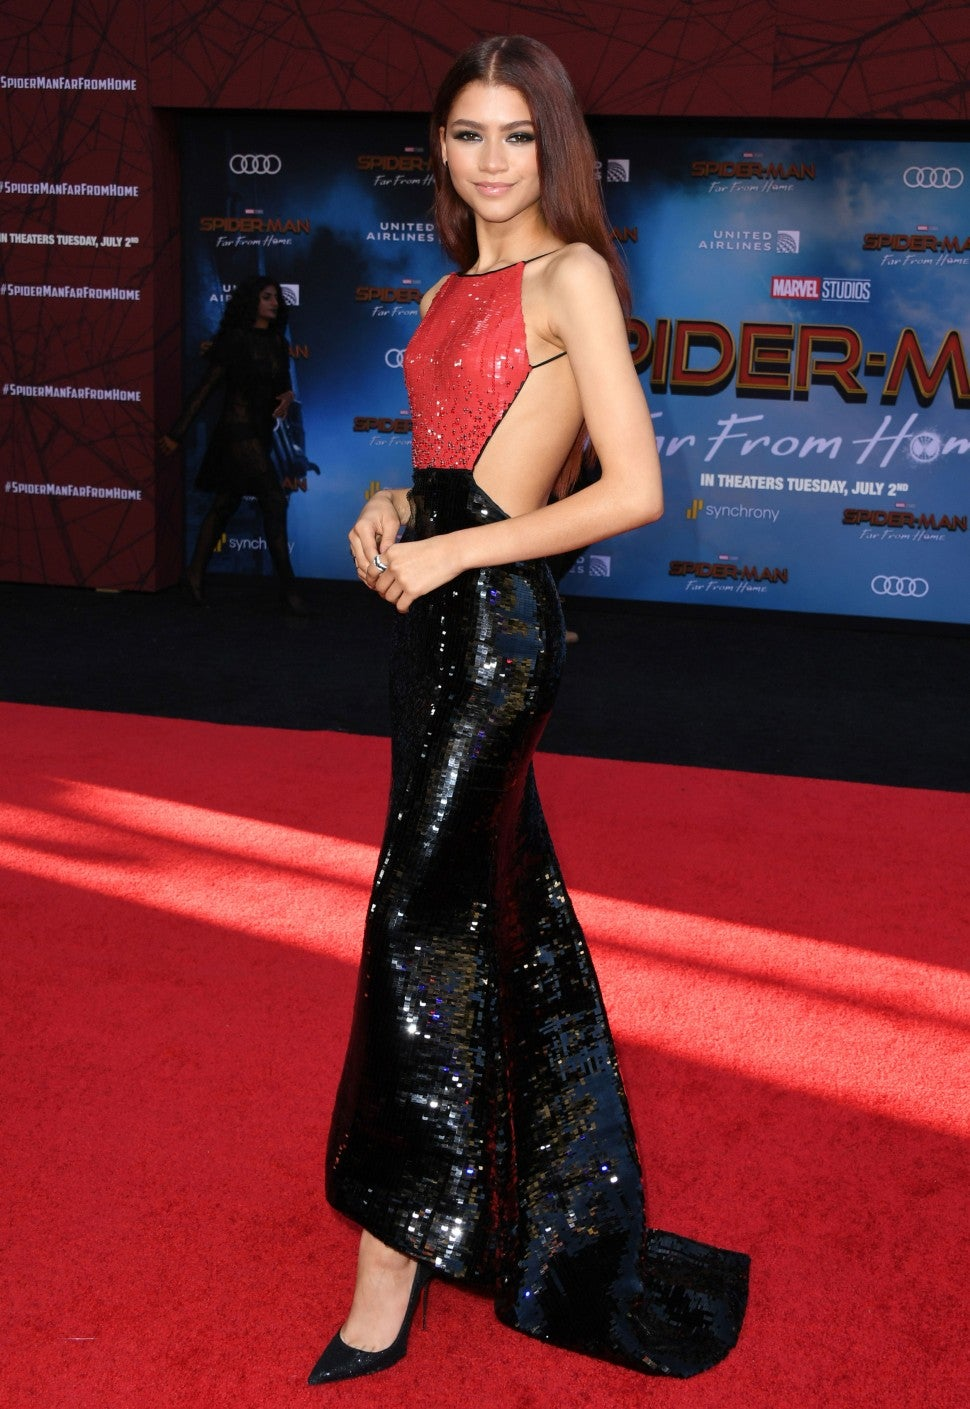 Zendaya at 'Spider-Man: Far From Home' premiere in Hollywood on June 26.